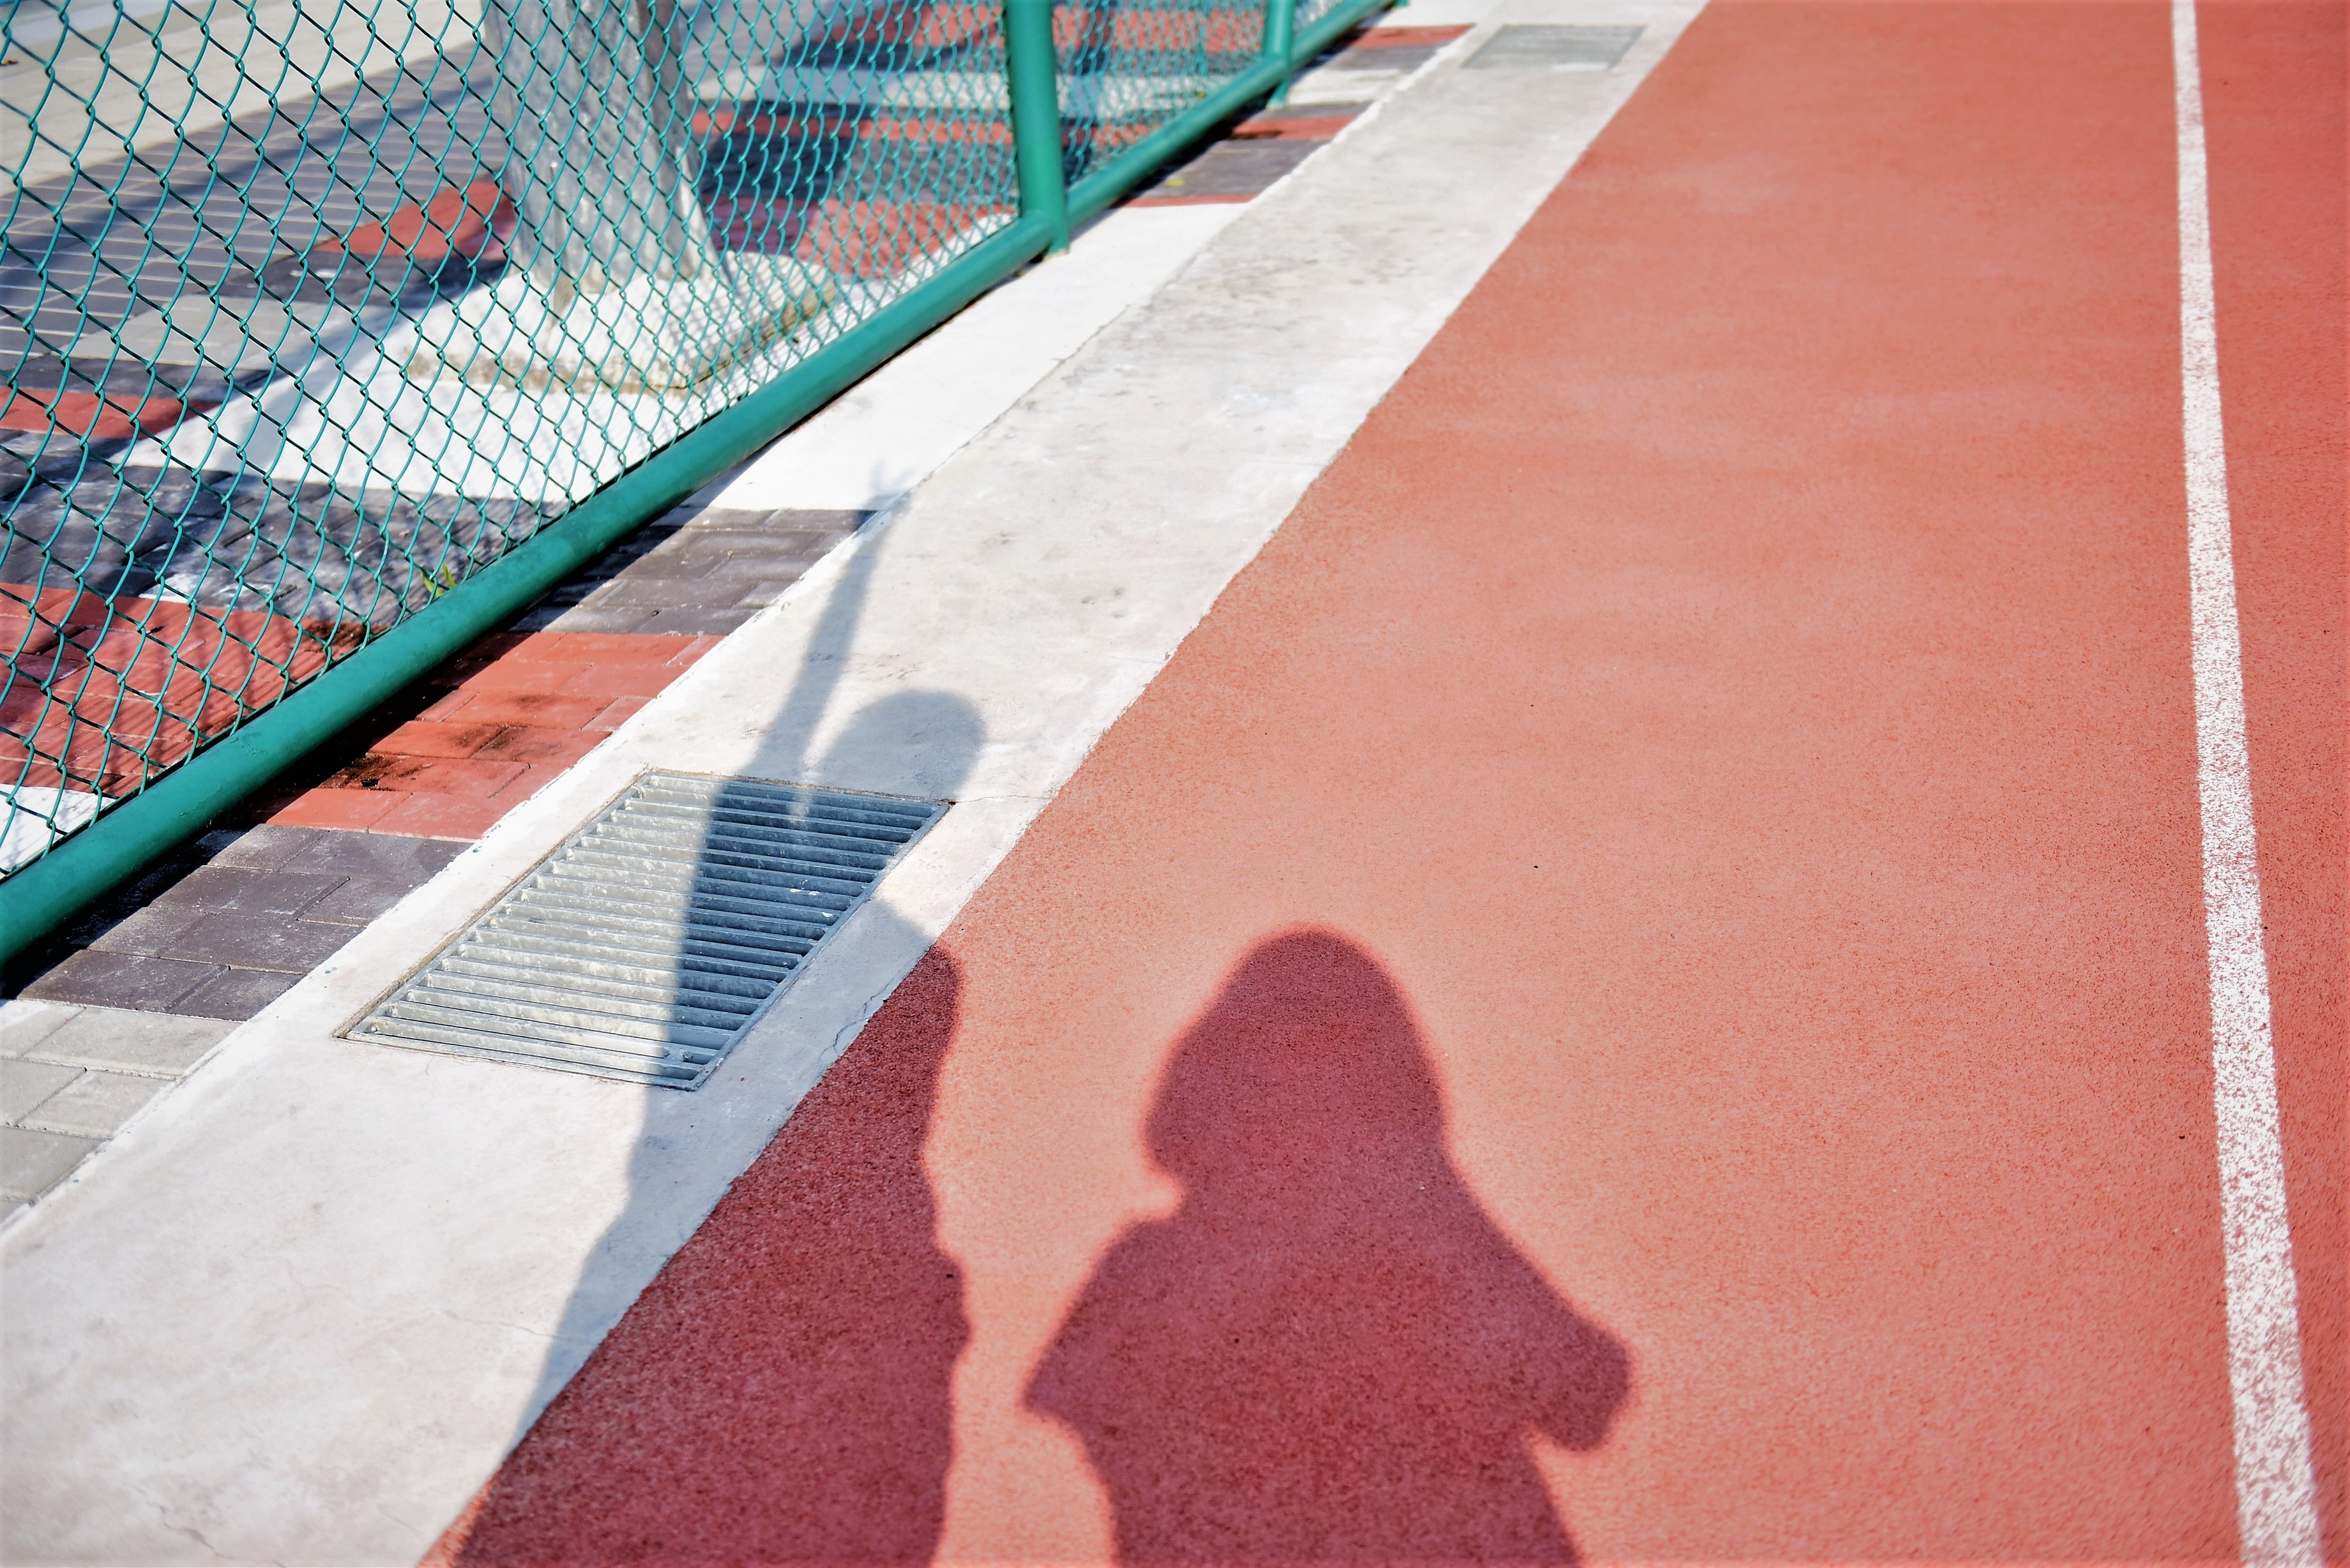 two person's shadow on brown and red surface